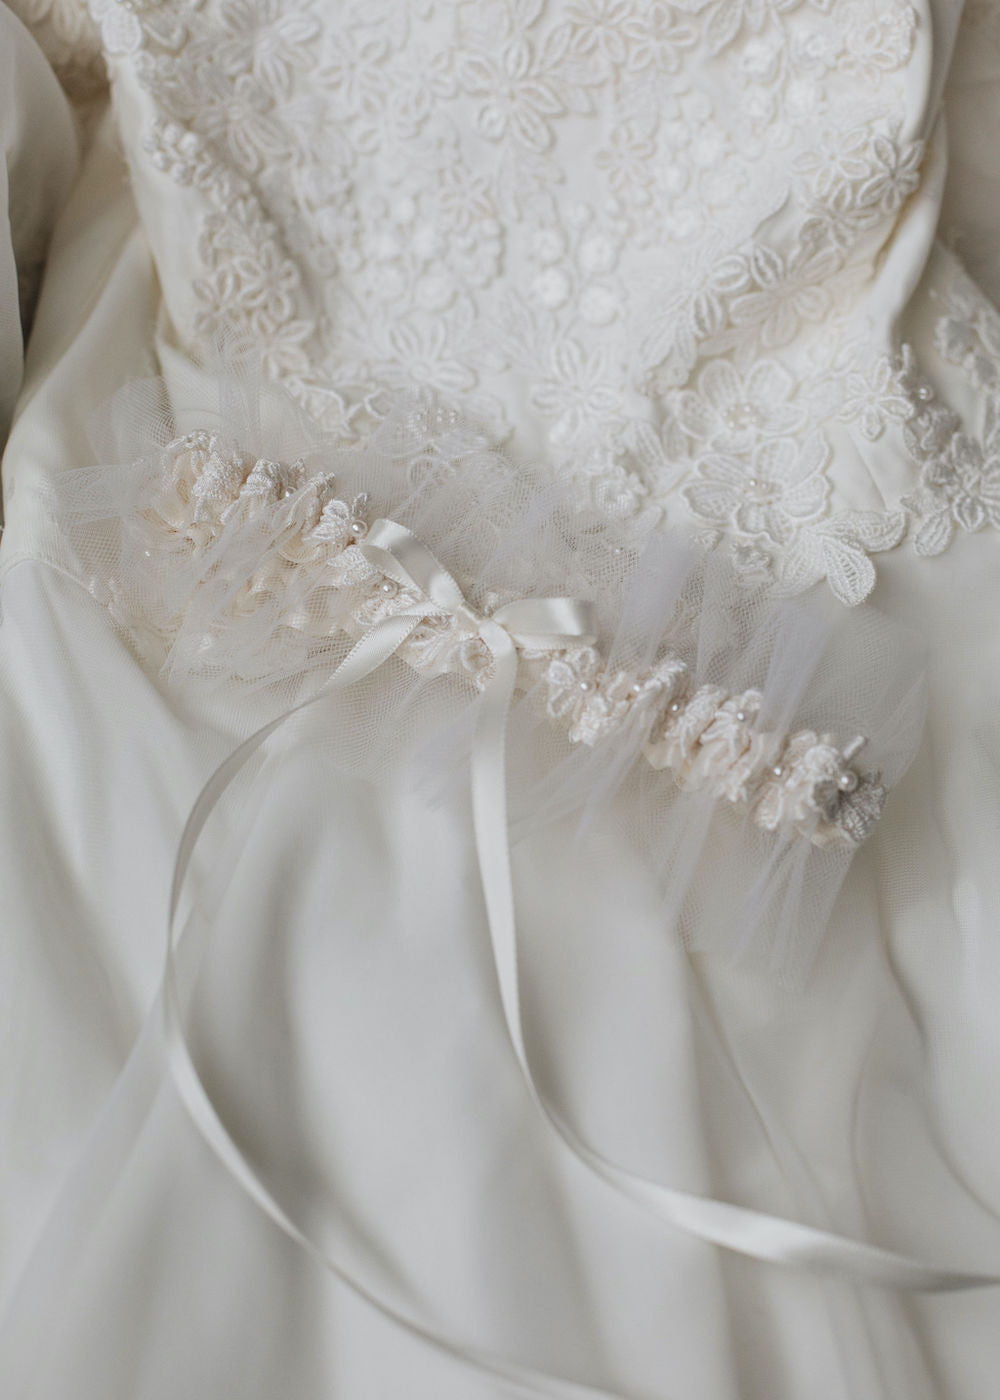 how to use your mom's wedding dress with custom wedding garter and personzlied handkerchiefs by expert bridal heirloom designer, The Garter Girl